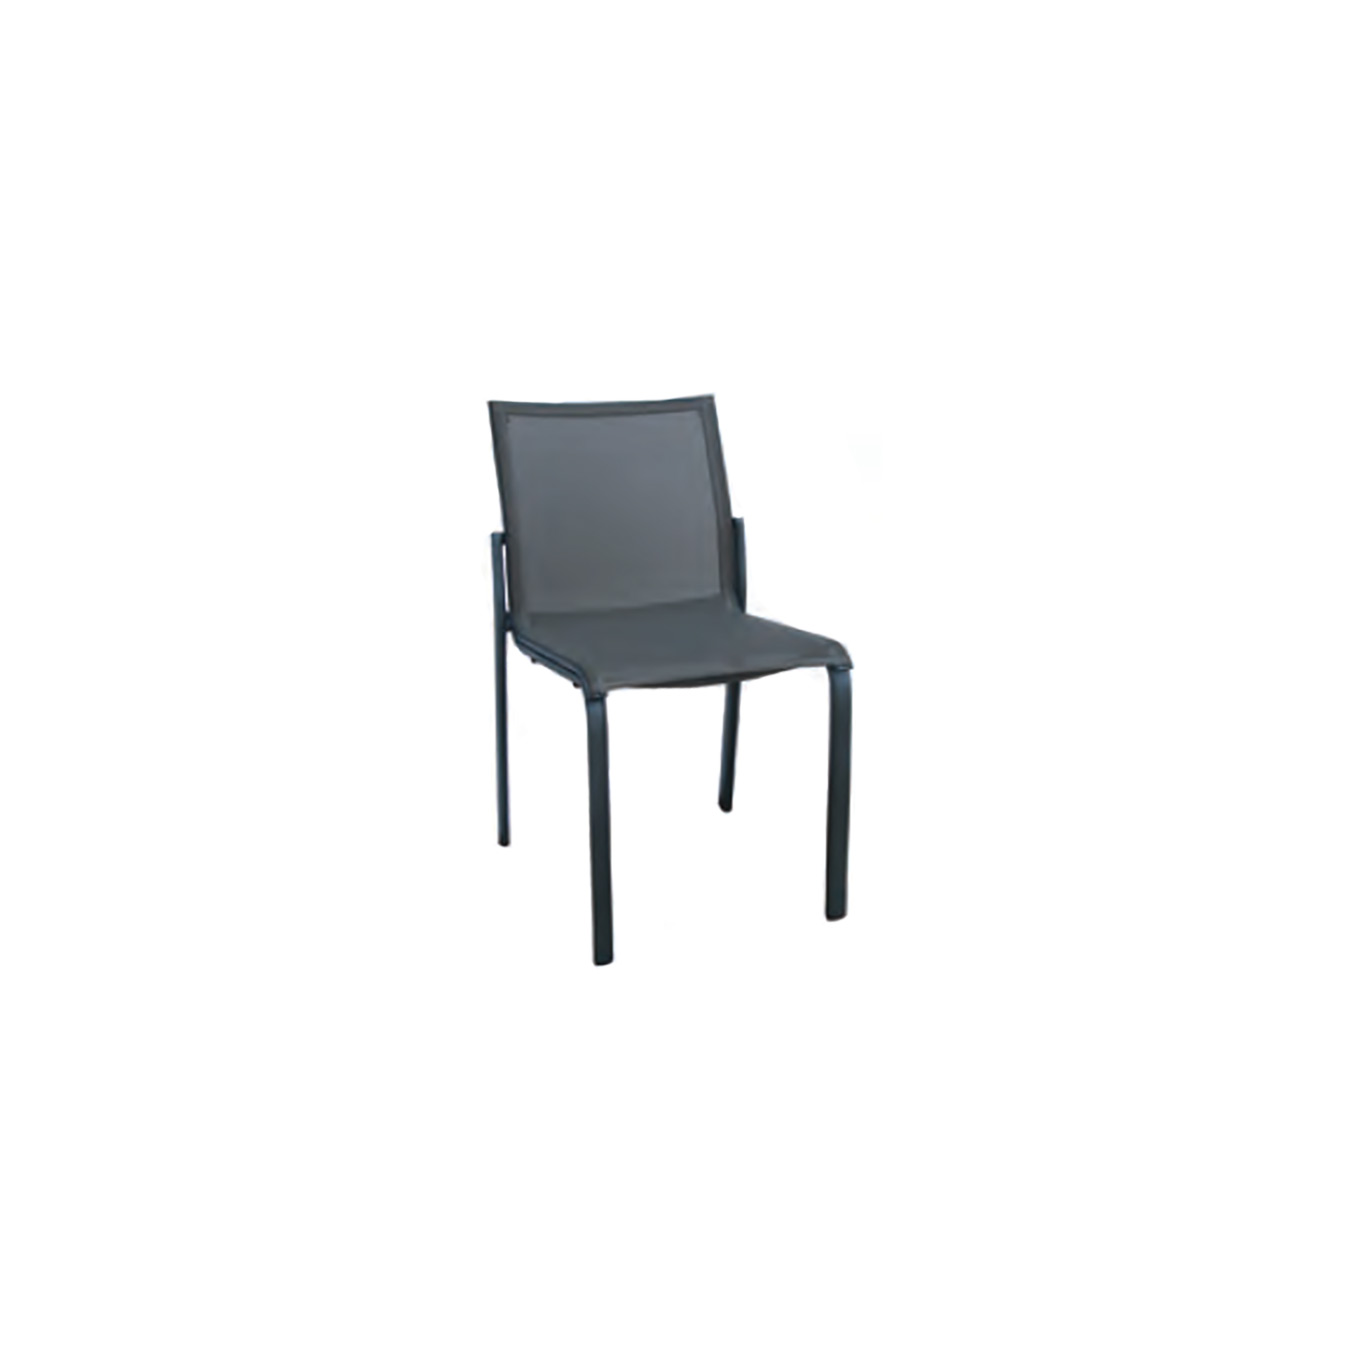 Les Jardins Hegoa Stacking Side Chair Leisure Living